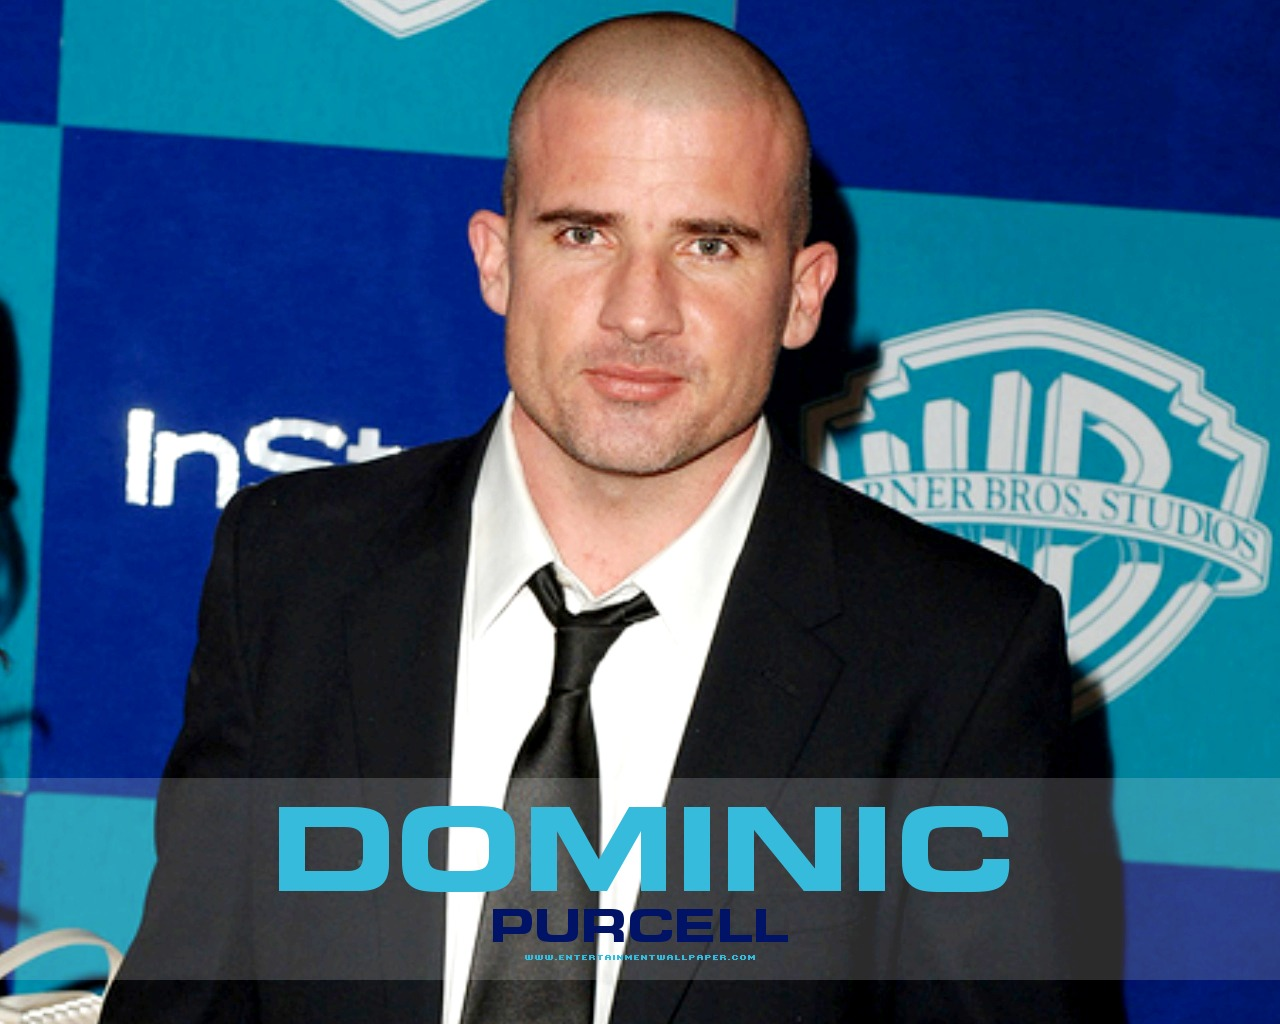 Dominic Purcell - Gallery